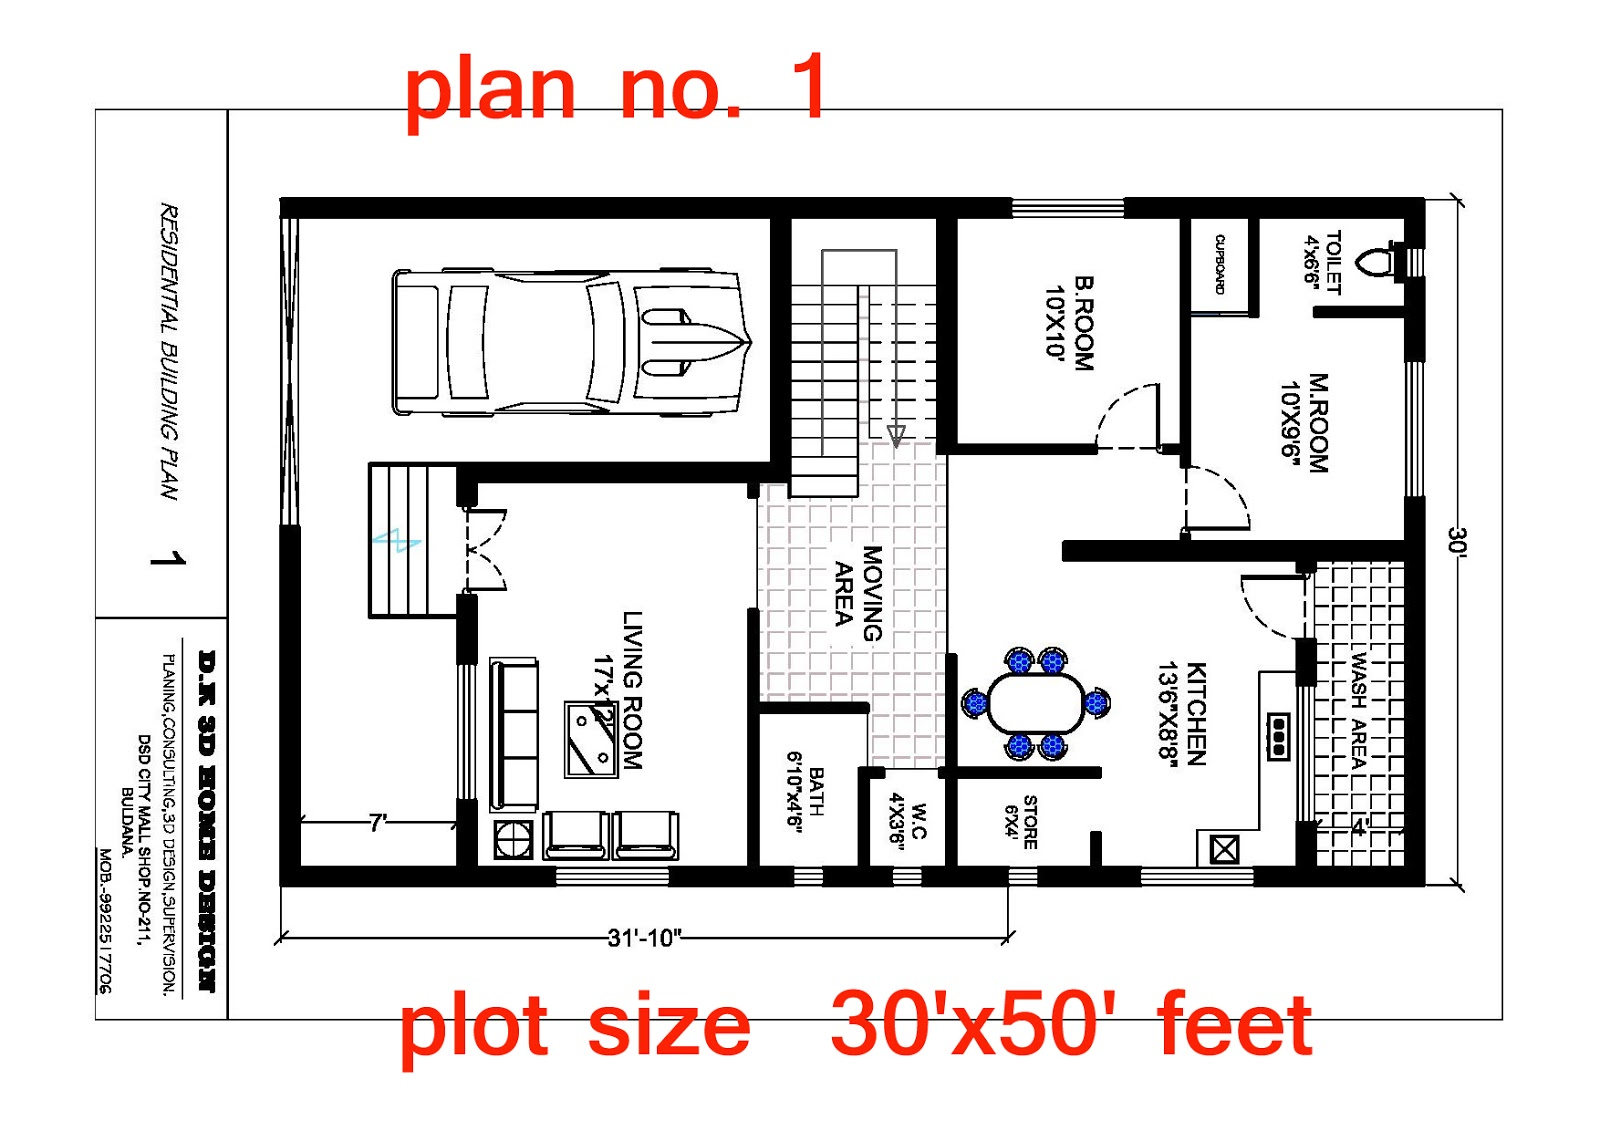 30 feet by 50 feet home plan everyone will like - Home Planing